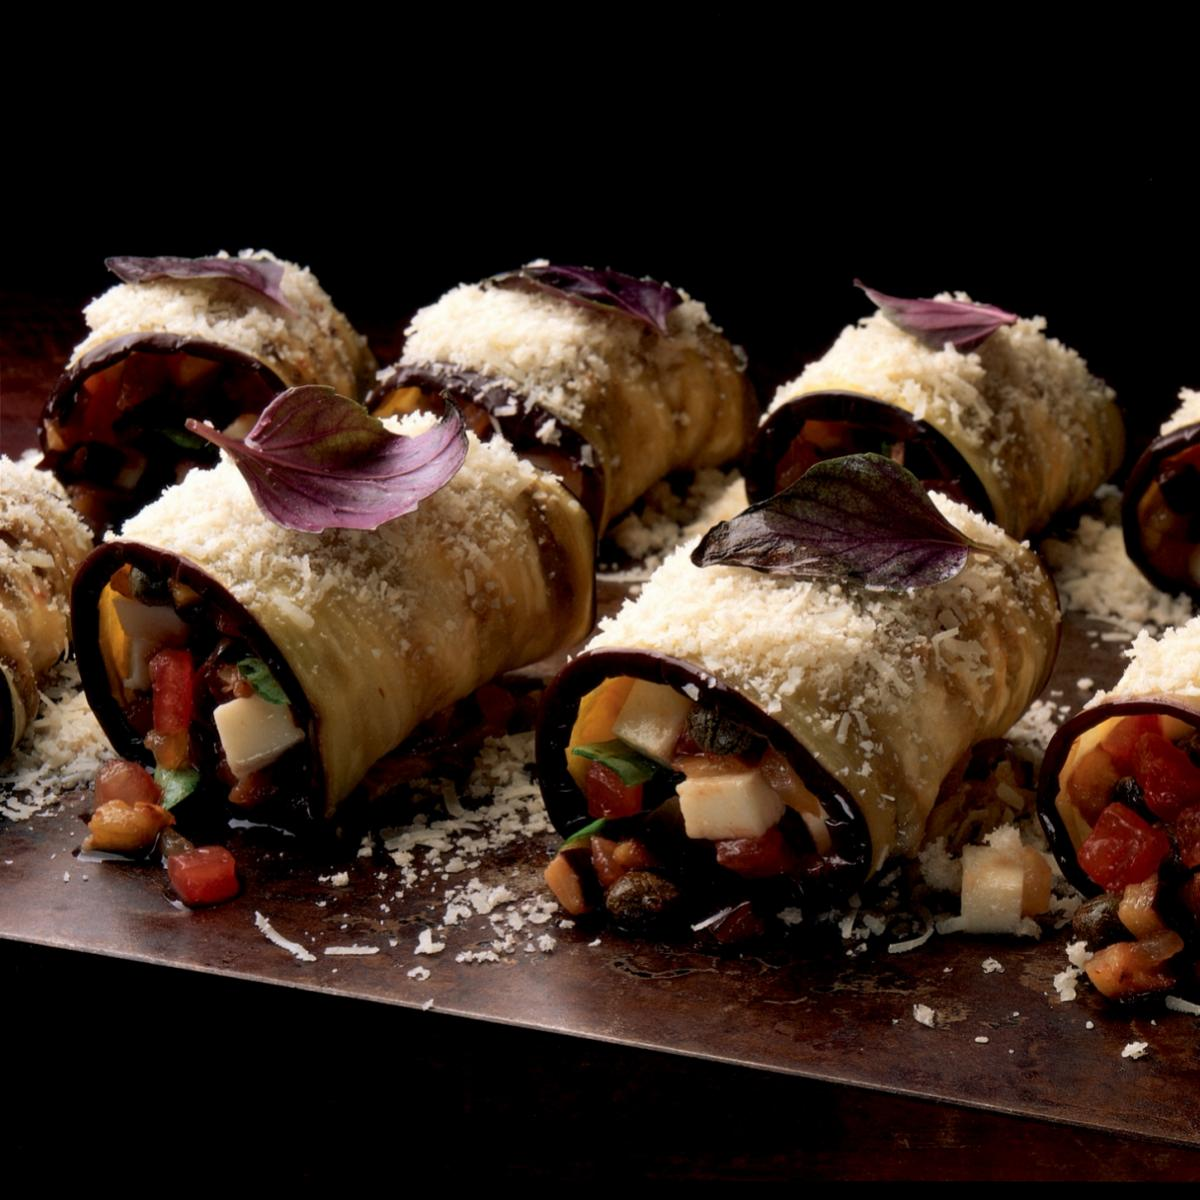 A picture of Delia's Italian Stuffed Aubergines recipe